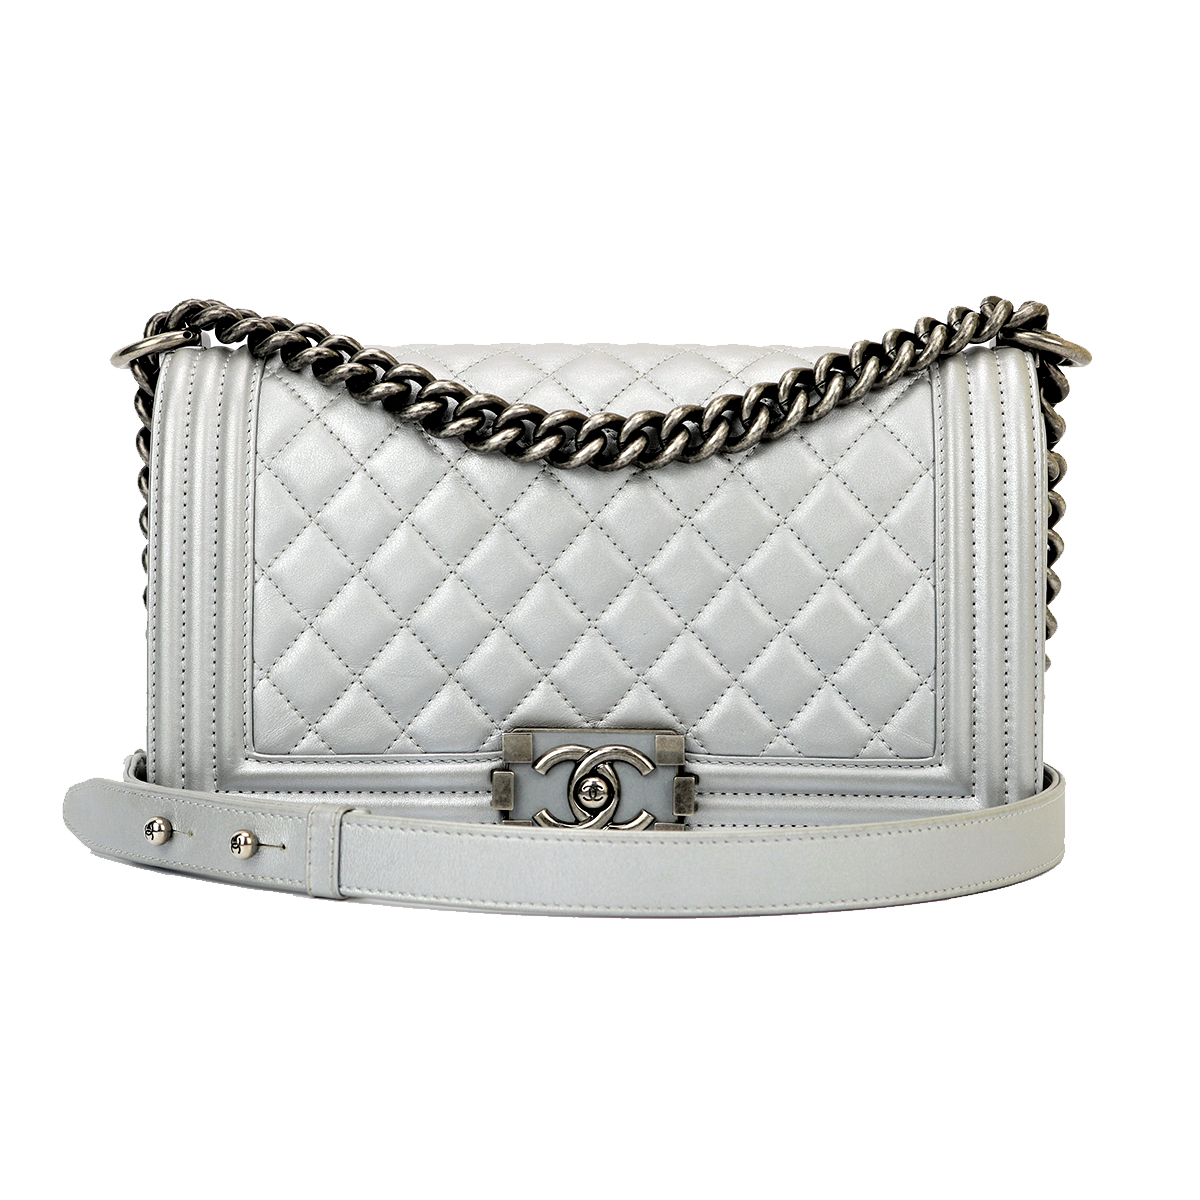 29f1ebd978fd91 CHANEL Old Medium Boy Silver Calfskin Ruthenium Hardware 2014 ...